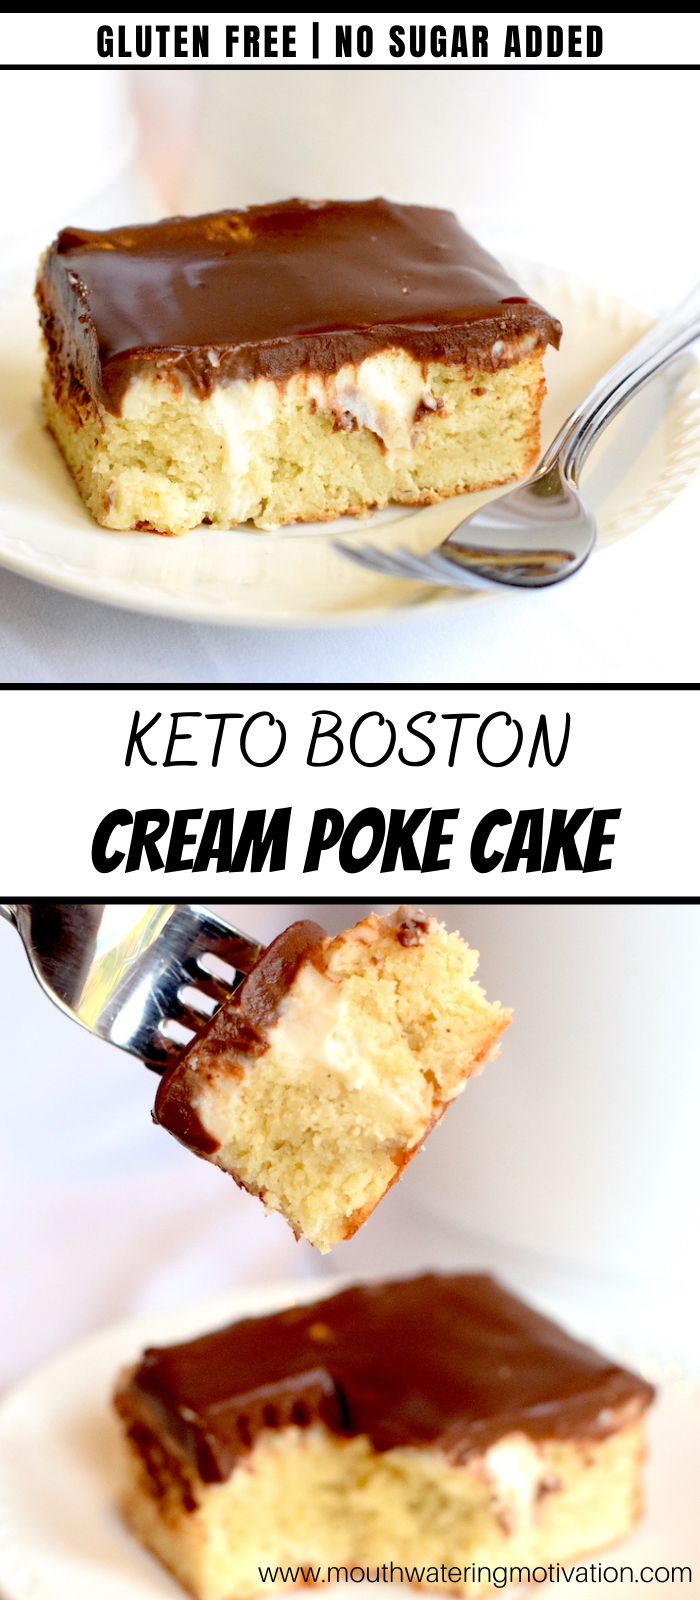 keto boston cream poke cake recipe